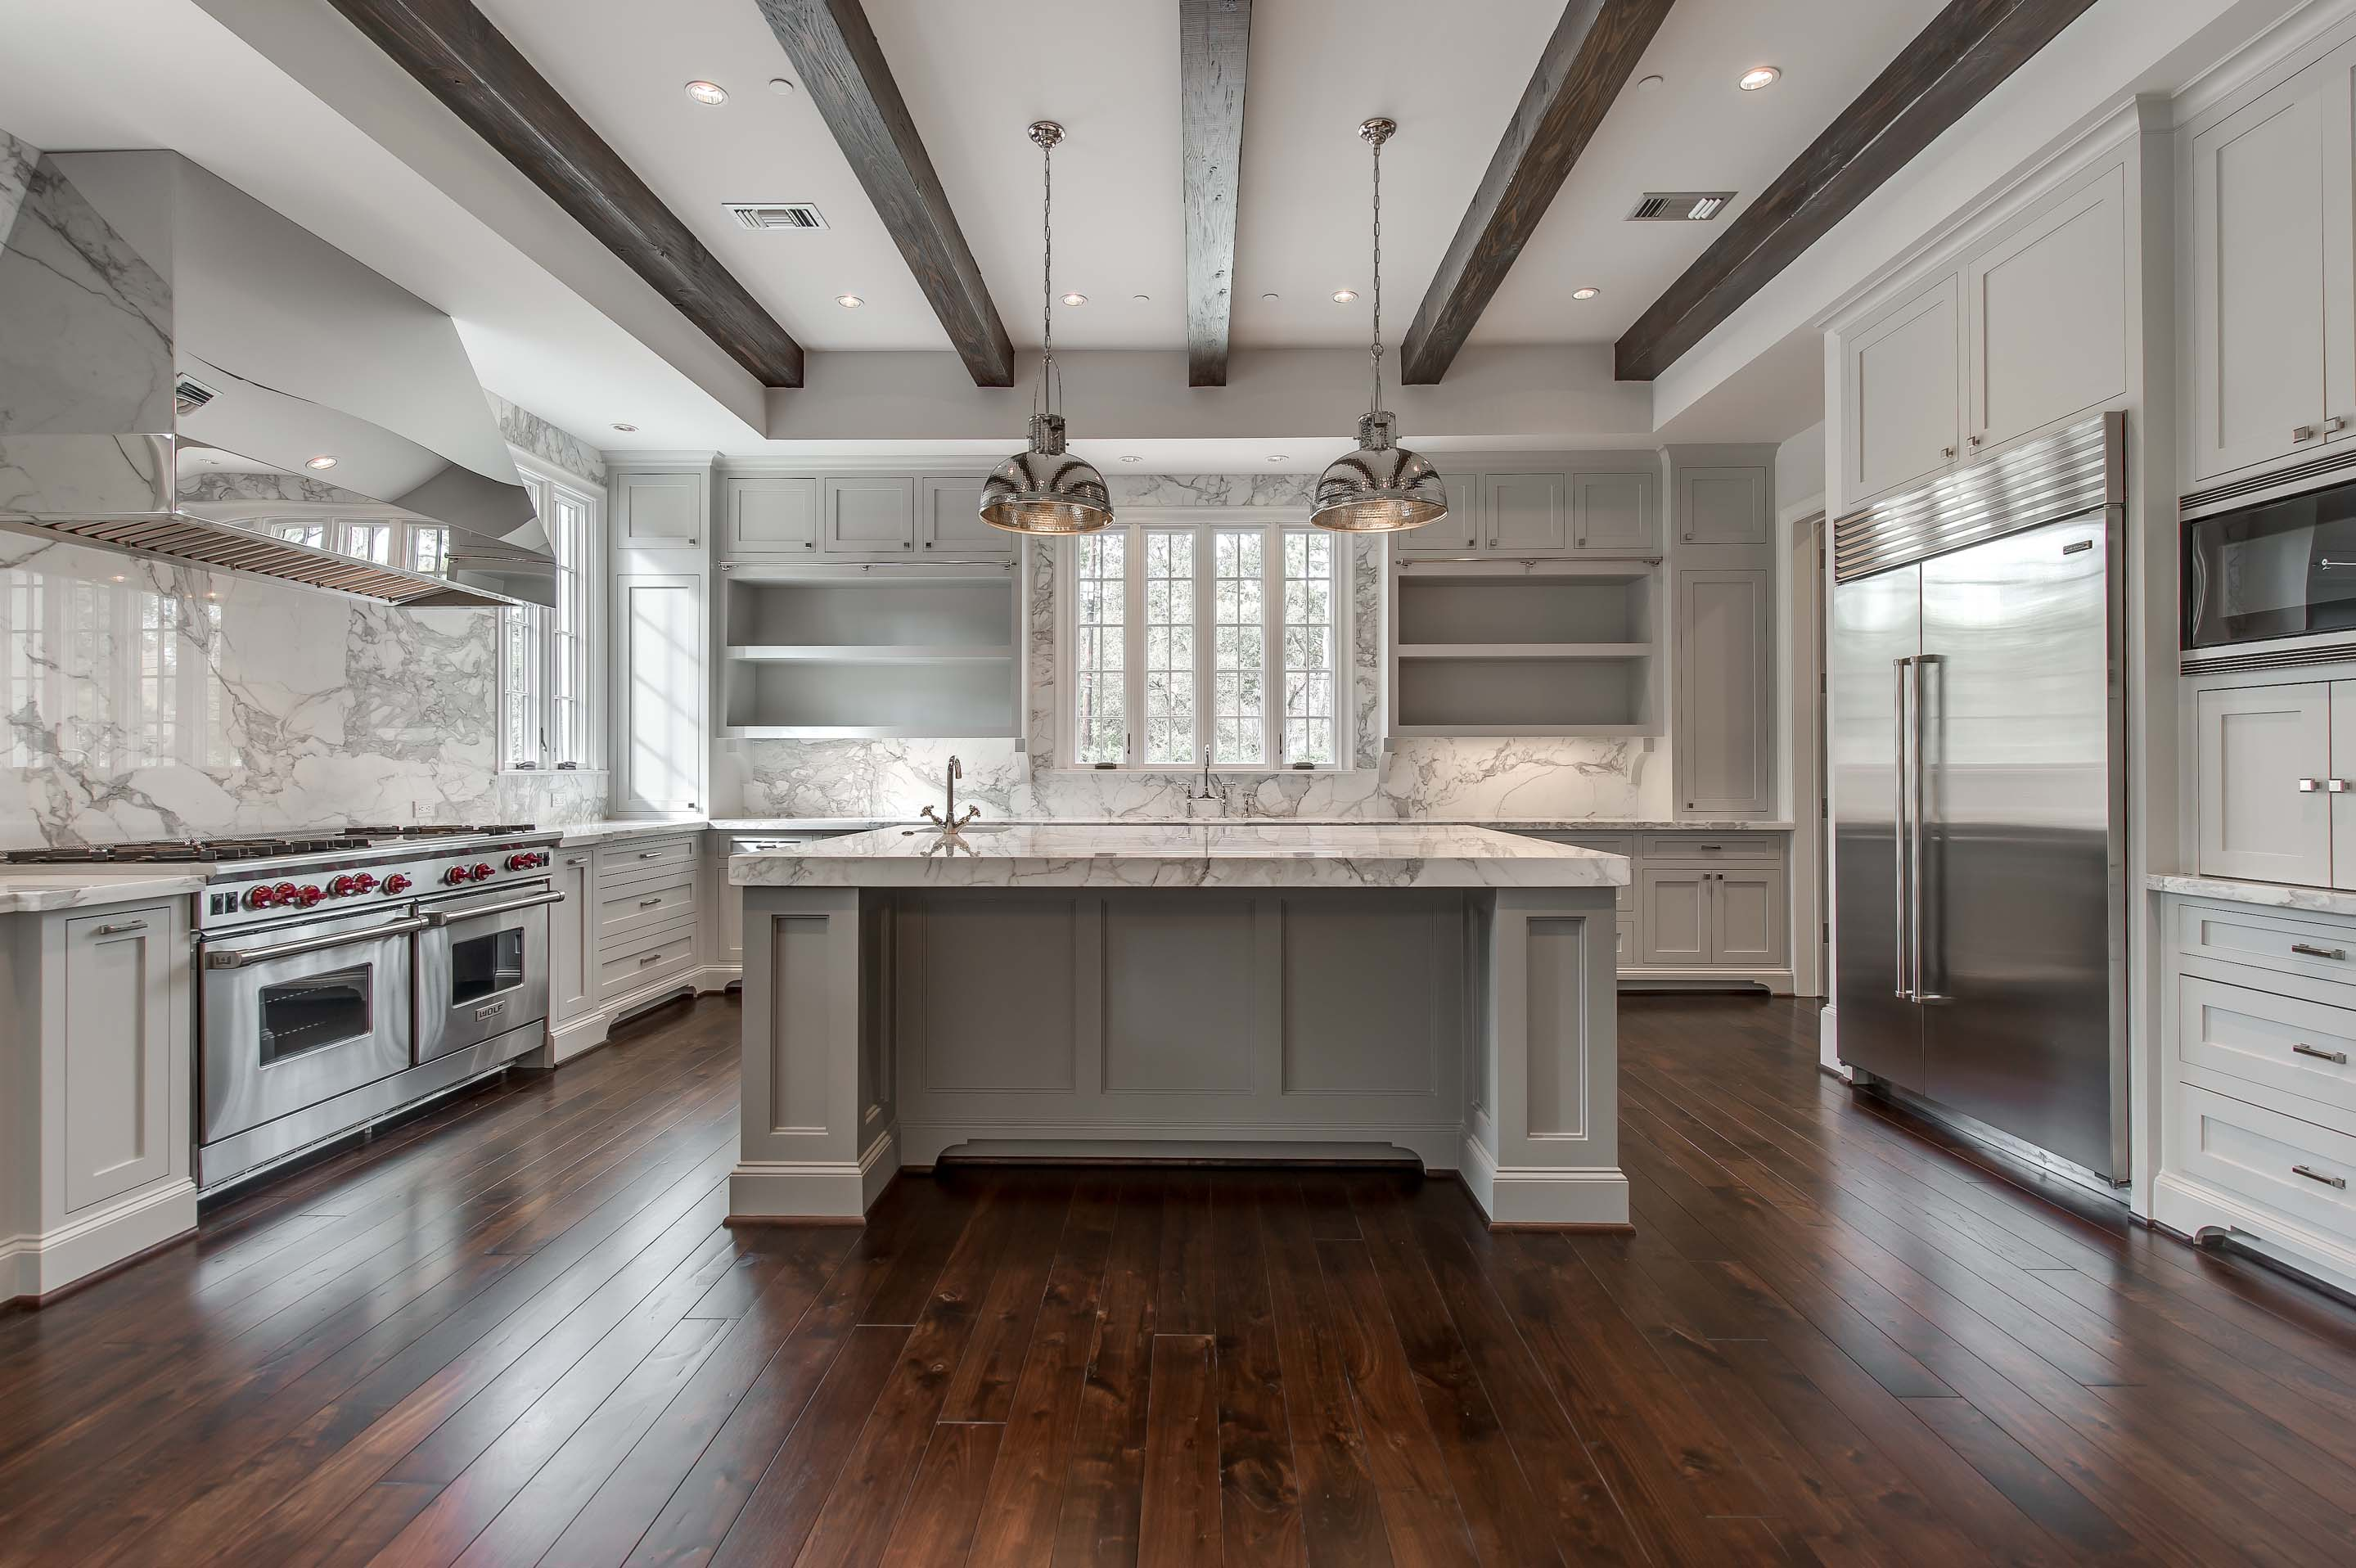 Kitchen designs houston tx - Elizabeth Garrett Interiors Houston Interior Design